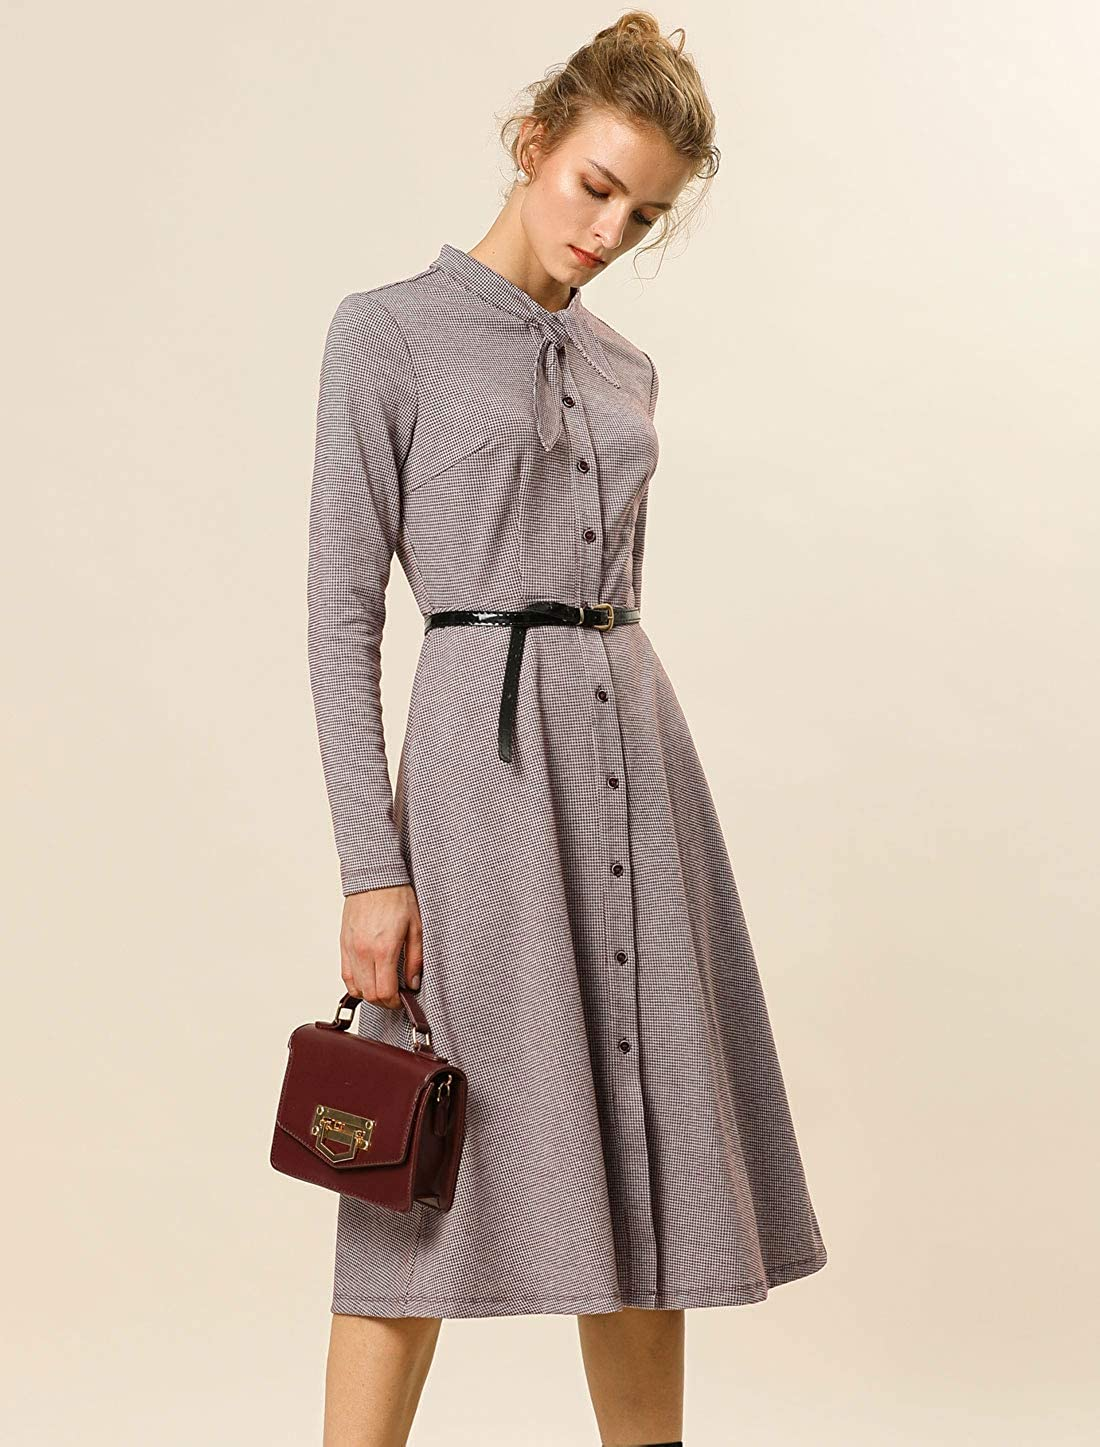 500 Vintage Style Dresses for Sale | Vintage Inspired Dresses Allegra K Womens Houndstooth A-Line Bow Tie Neck Midi Plaid Autumn Dress $29.99 AT vintagedancer.com